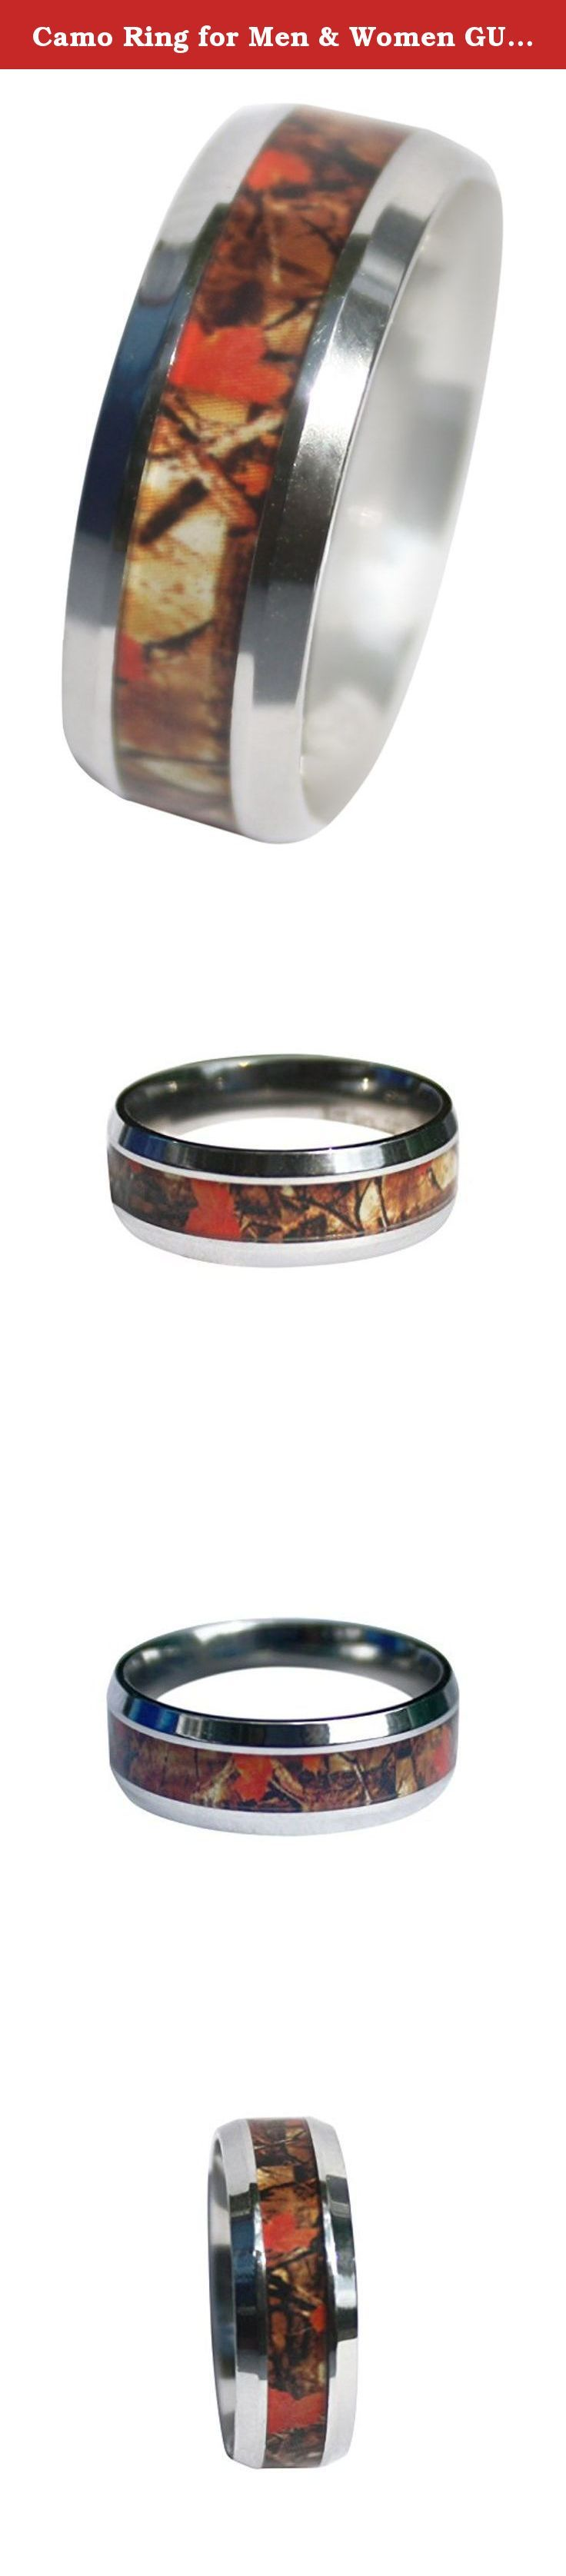 Camo Ring for Men & Women GUARANTEED LIFETIME WARRANTY, 8mm Wild Amber Blaze Orange Camo Ring, Camo Wedding Rings ON SALE TODAY!. These awesome rings were custom designed and built with a unique wild amber blaze orange camo pattern that is brand new and getting rave reviews. Wild Camo they call it, and the reviews for this ring are 5 star for a reason. High quality Surgical Grade Stainless Steel with a beautiful and detailed resin inlay that is sealed perfectly. These camo rings are great...